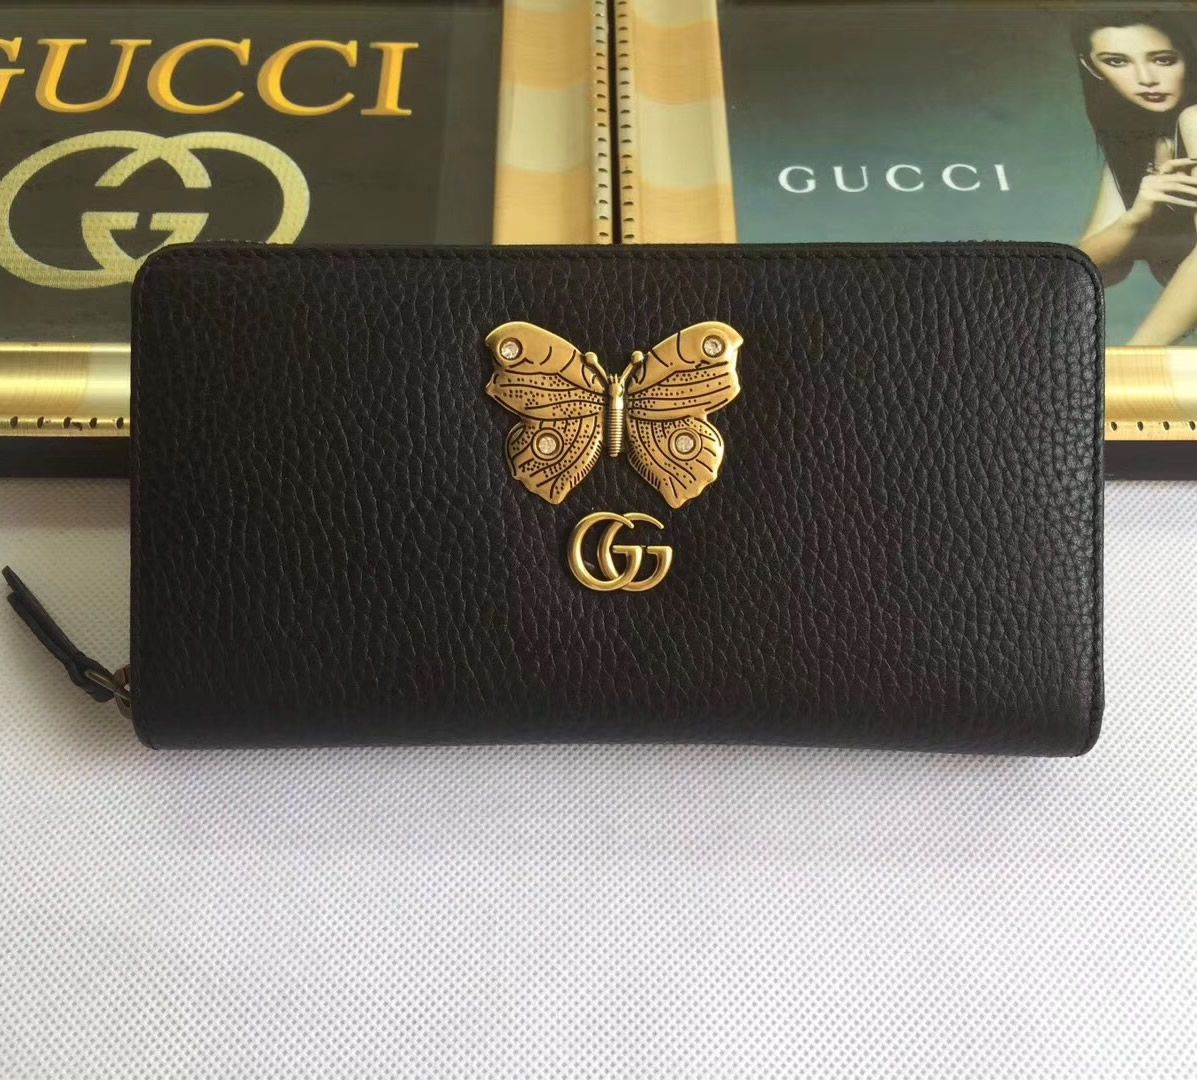 Gucci black leather zip around wallet with butterfly zip